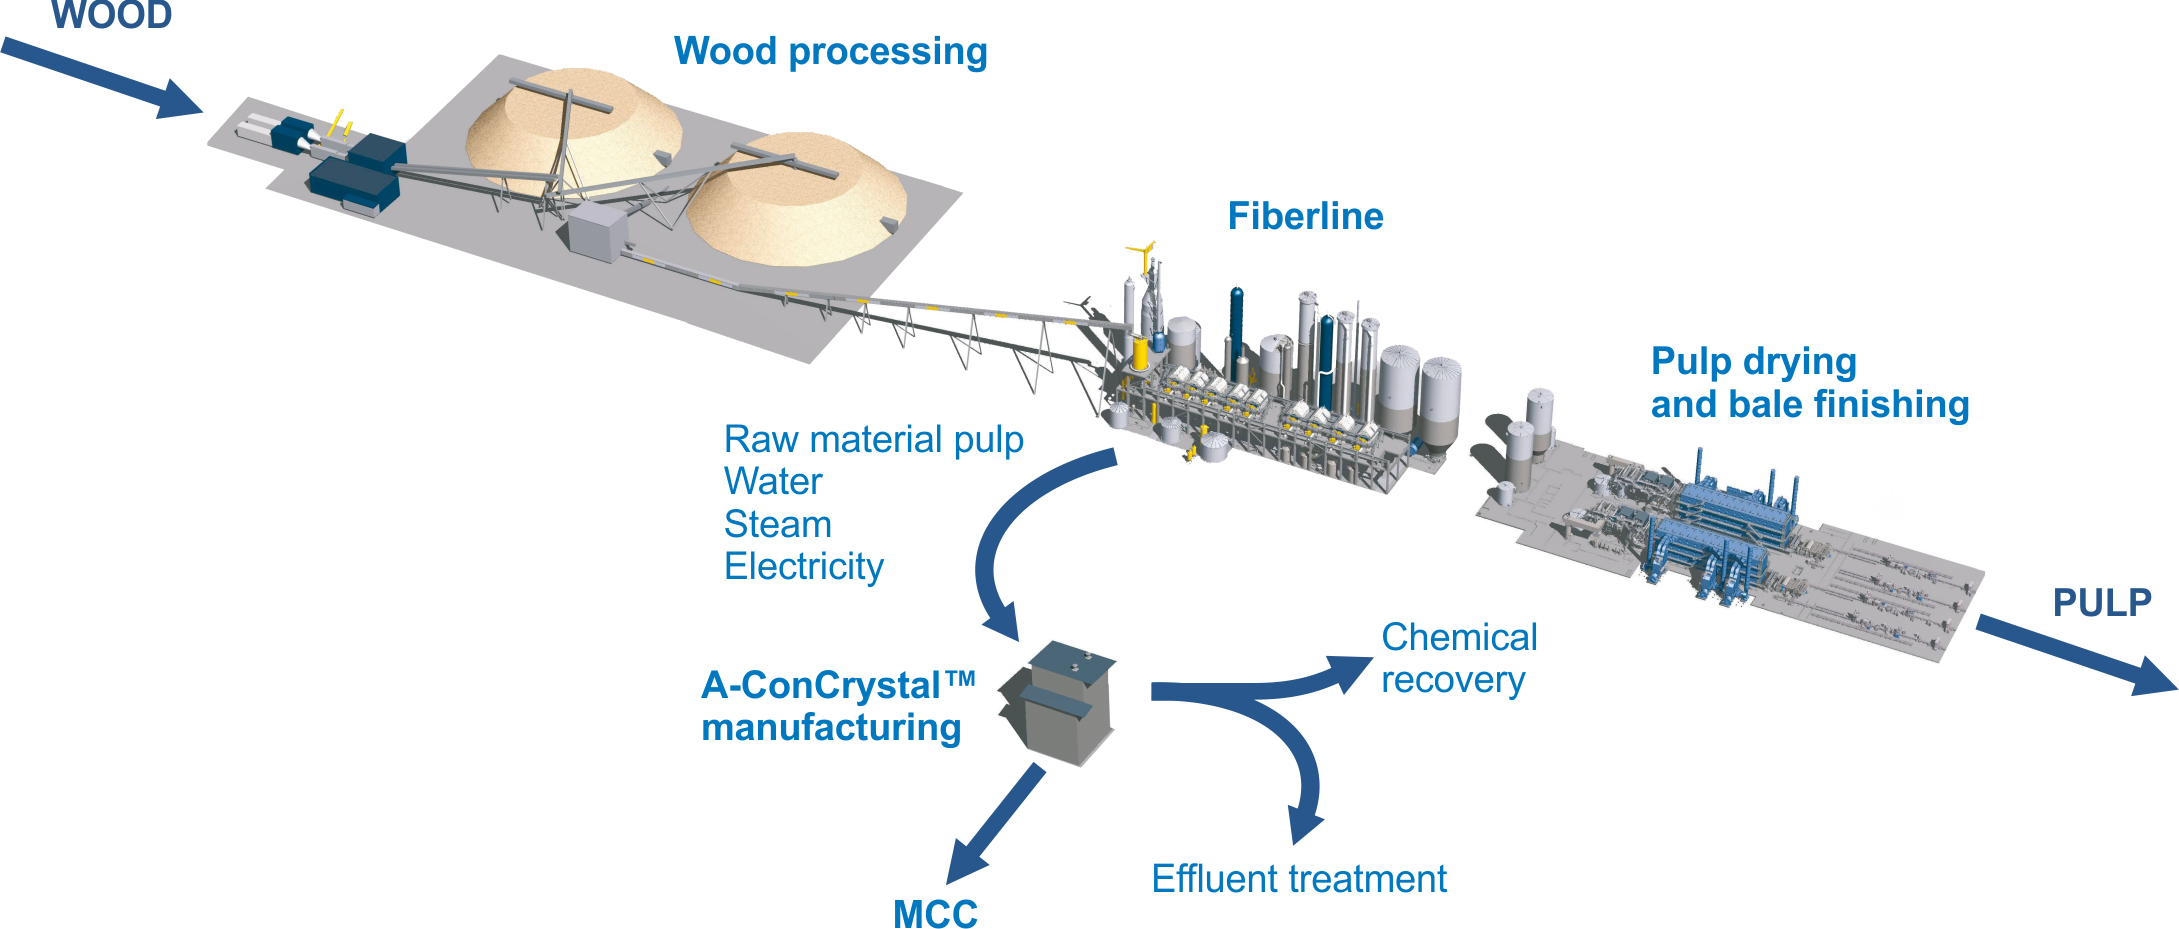 Process flow description of A-ConCrystal plant when integrated with a pulp mill